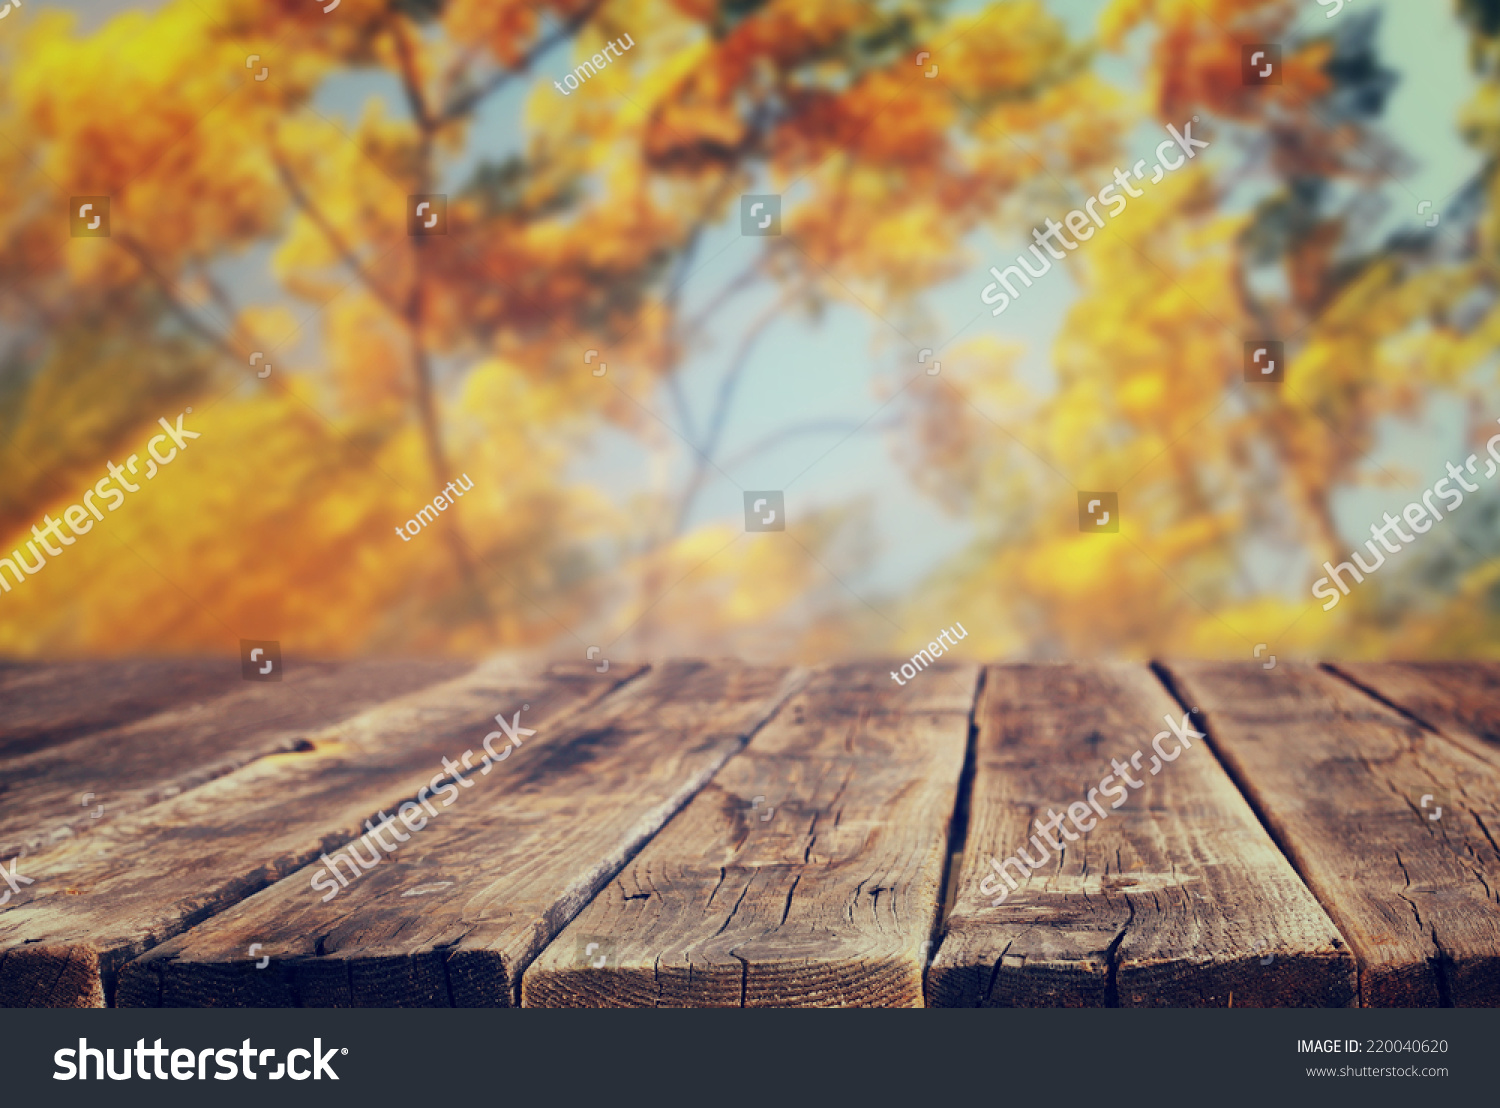 Image Of Front Rustic Wood Boards And Background Fall Leaves In Forest